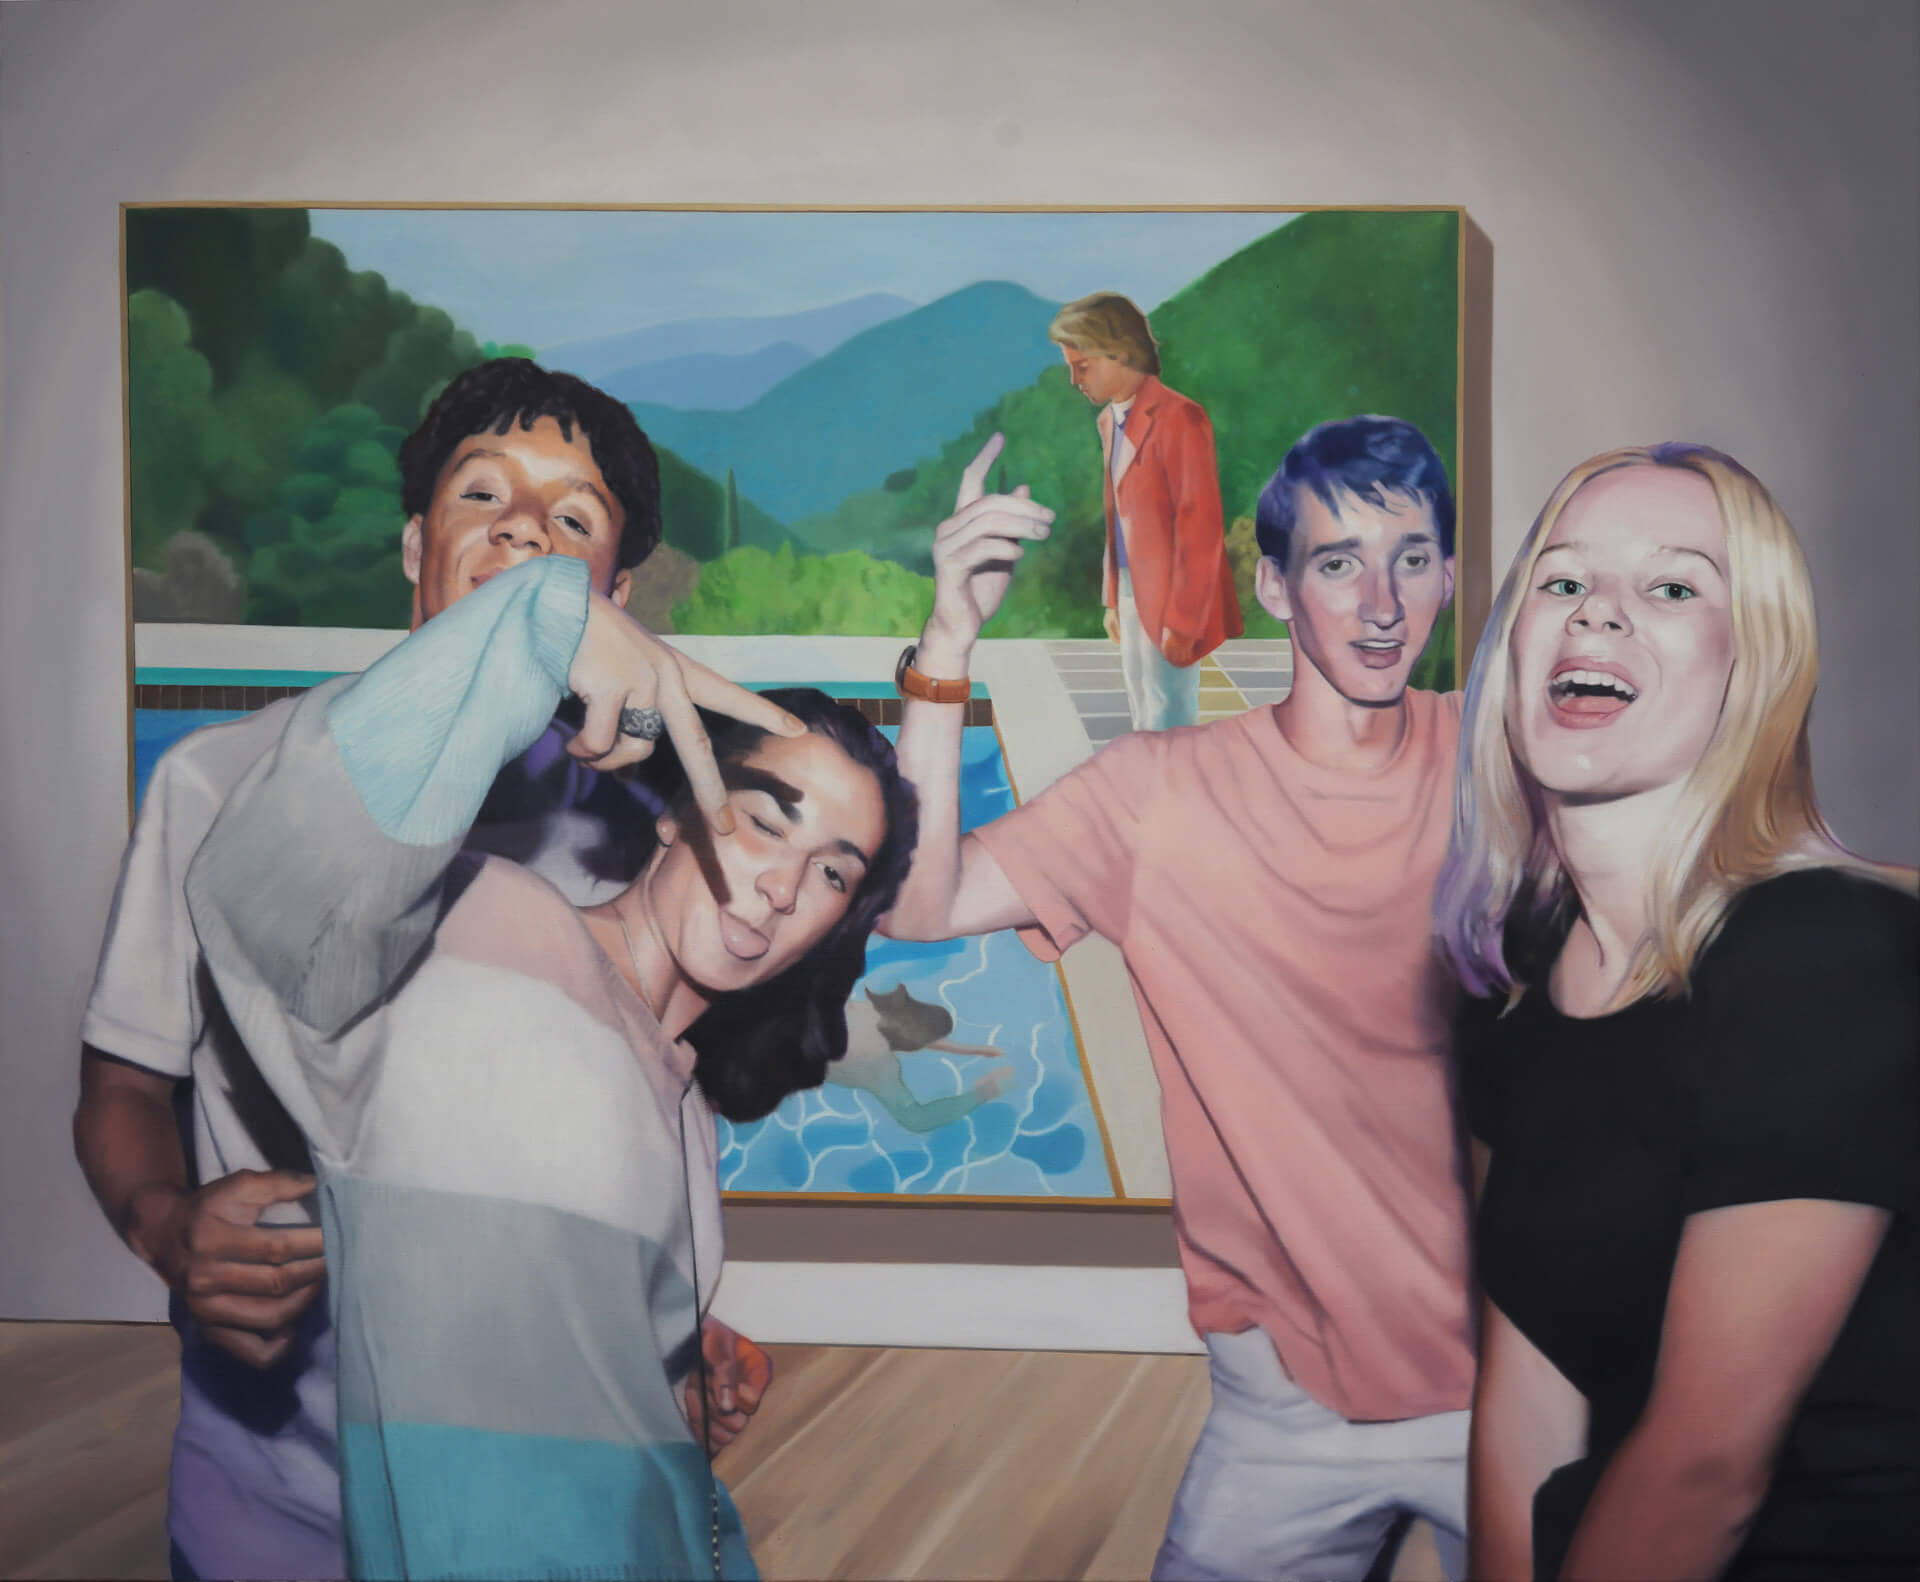 Stjepan-Šandrk-Party-Hockney-150x180cm-oil-on-canvas-2019.